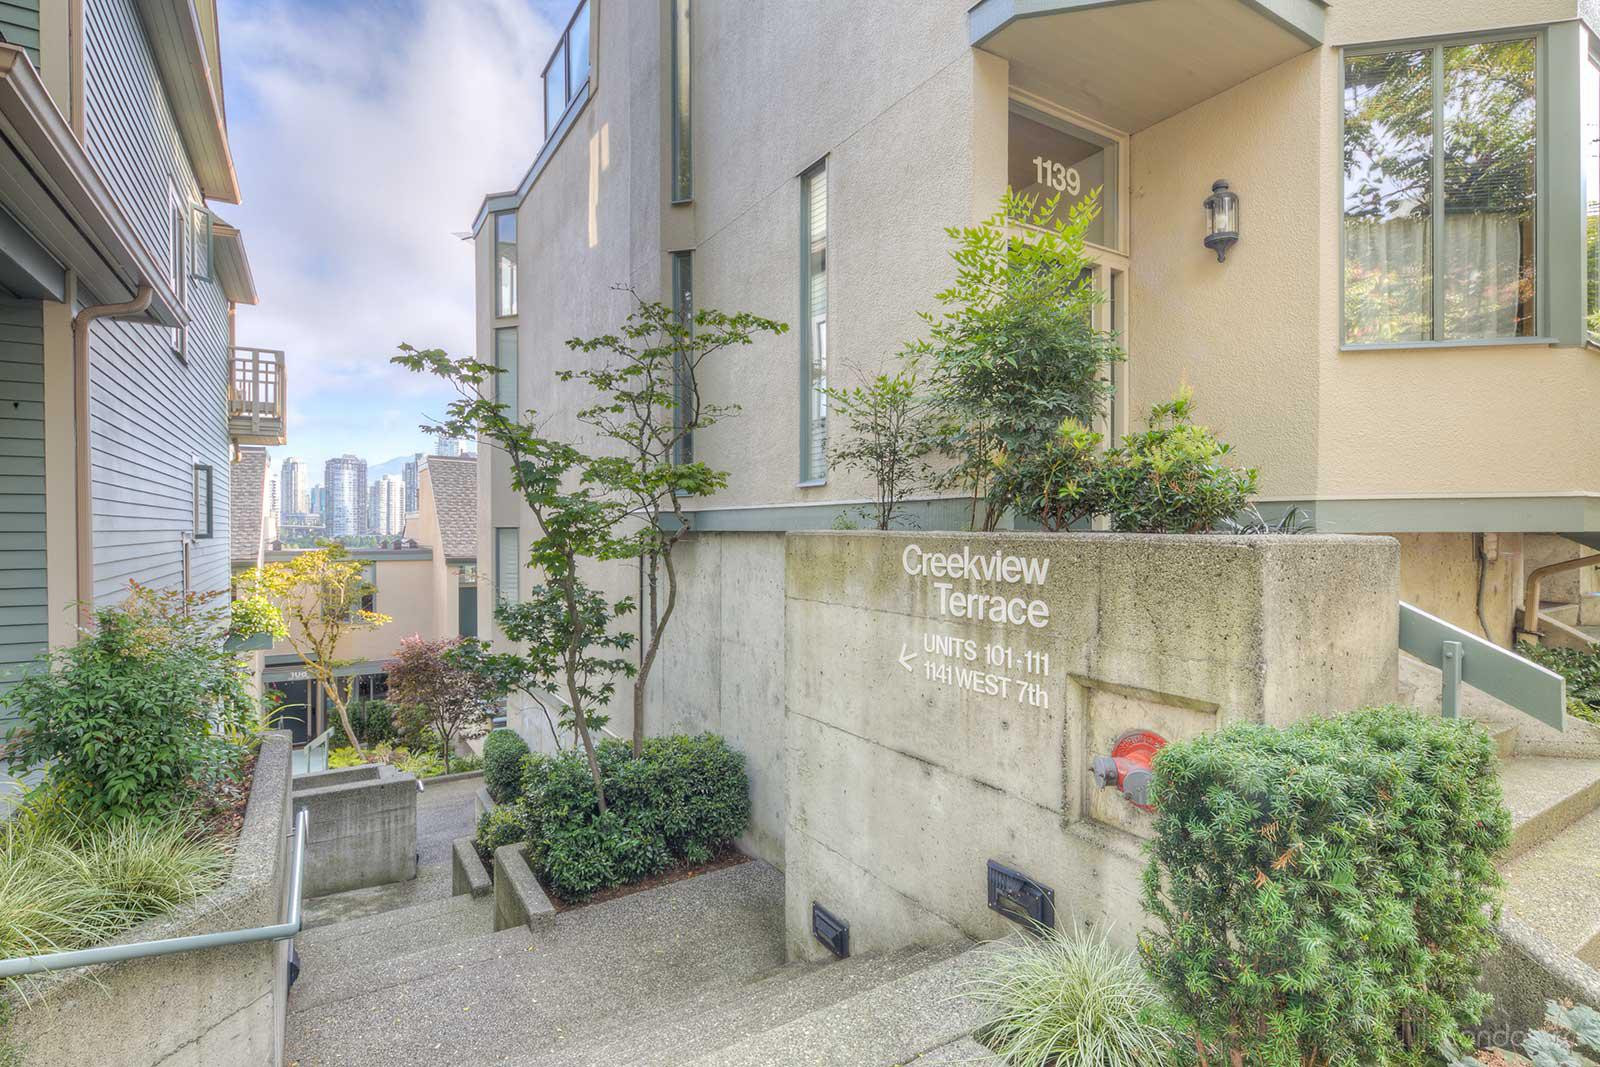 Creekview Terrace at 1141 W 7th Ave, Vancouver 0